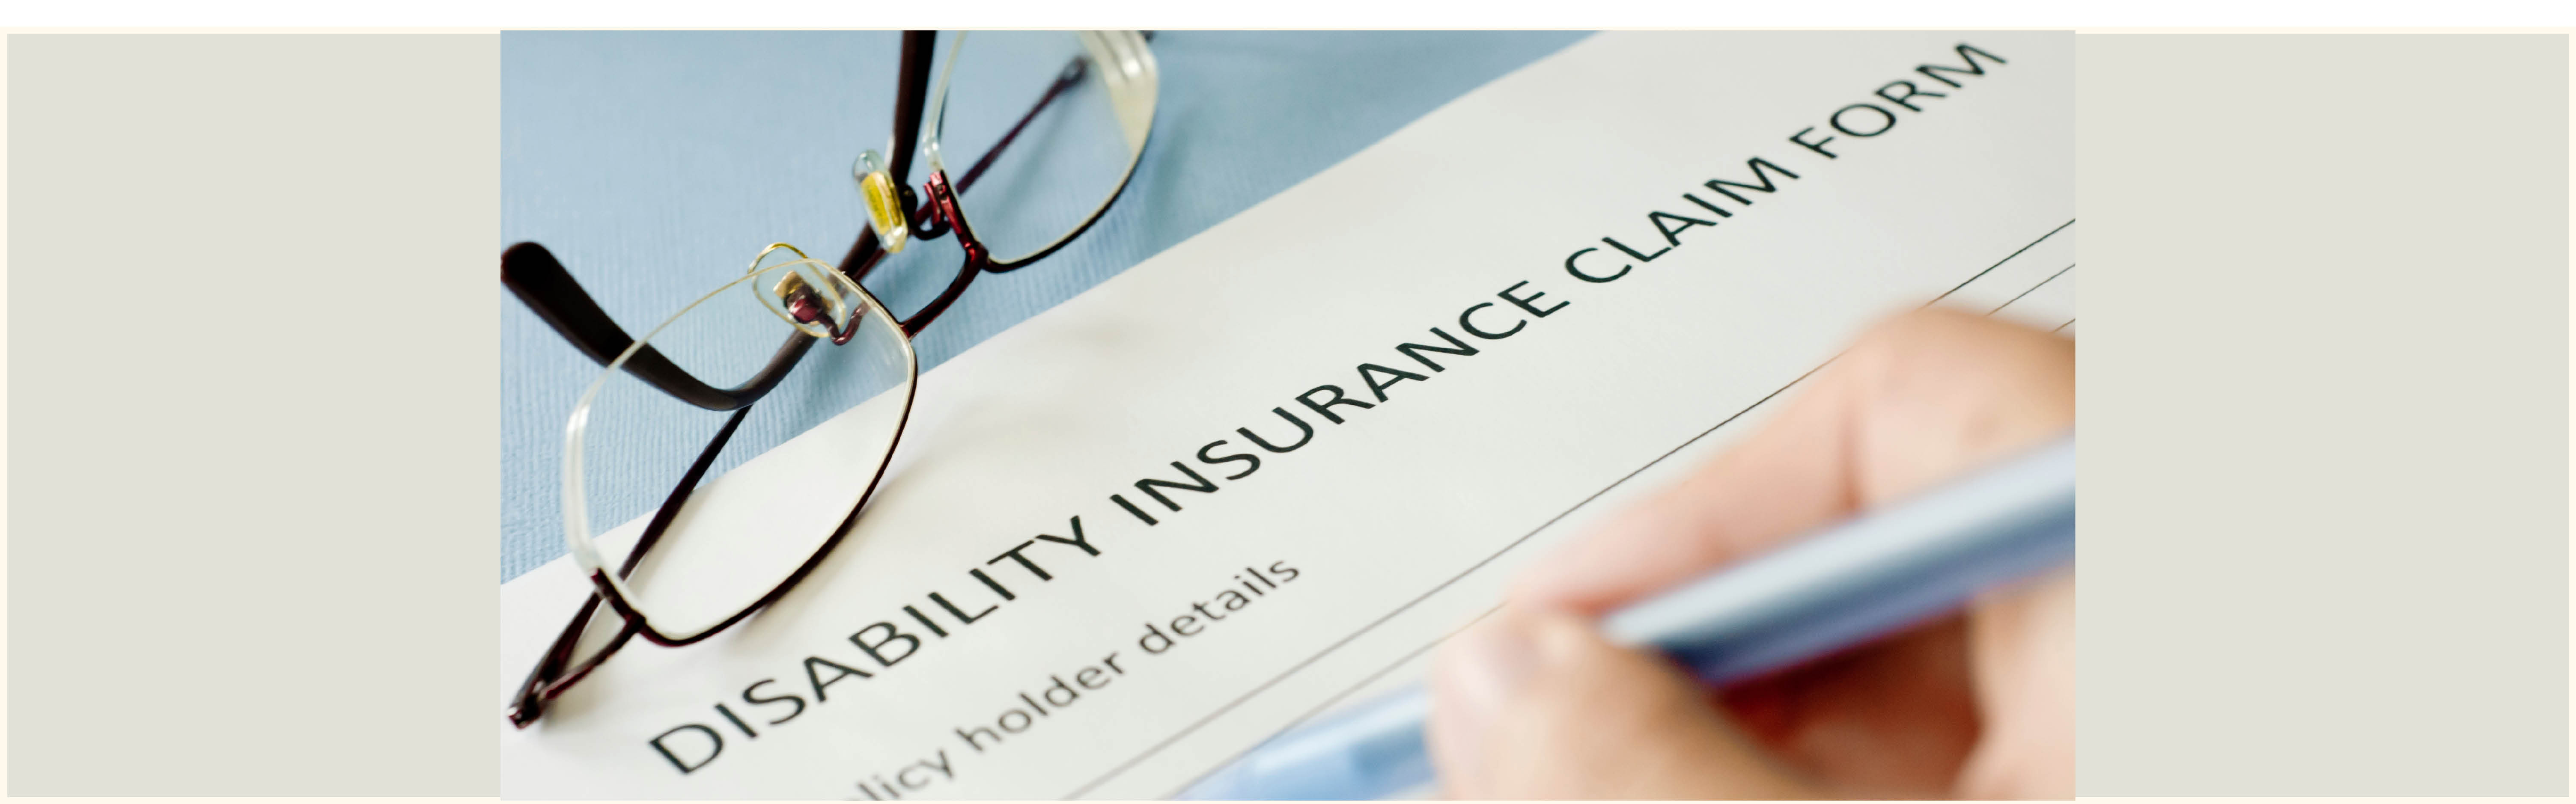 Disability Insurance Form